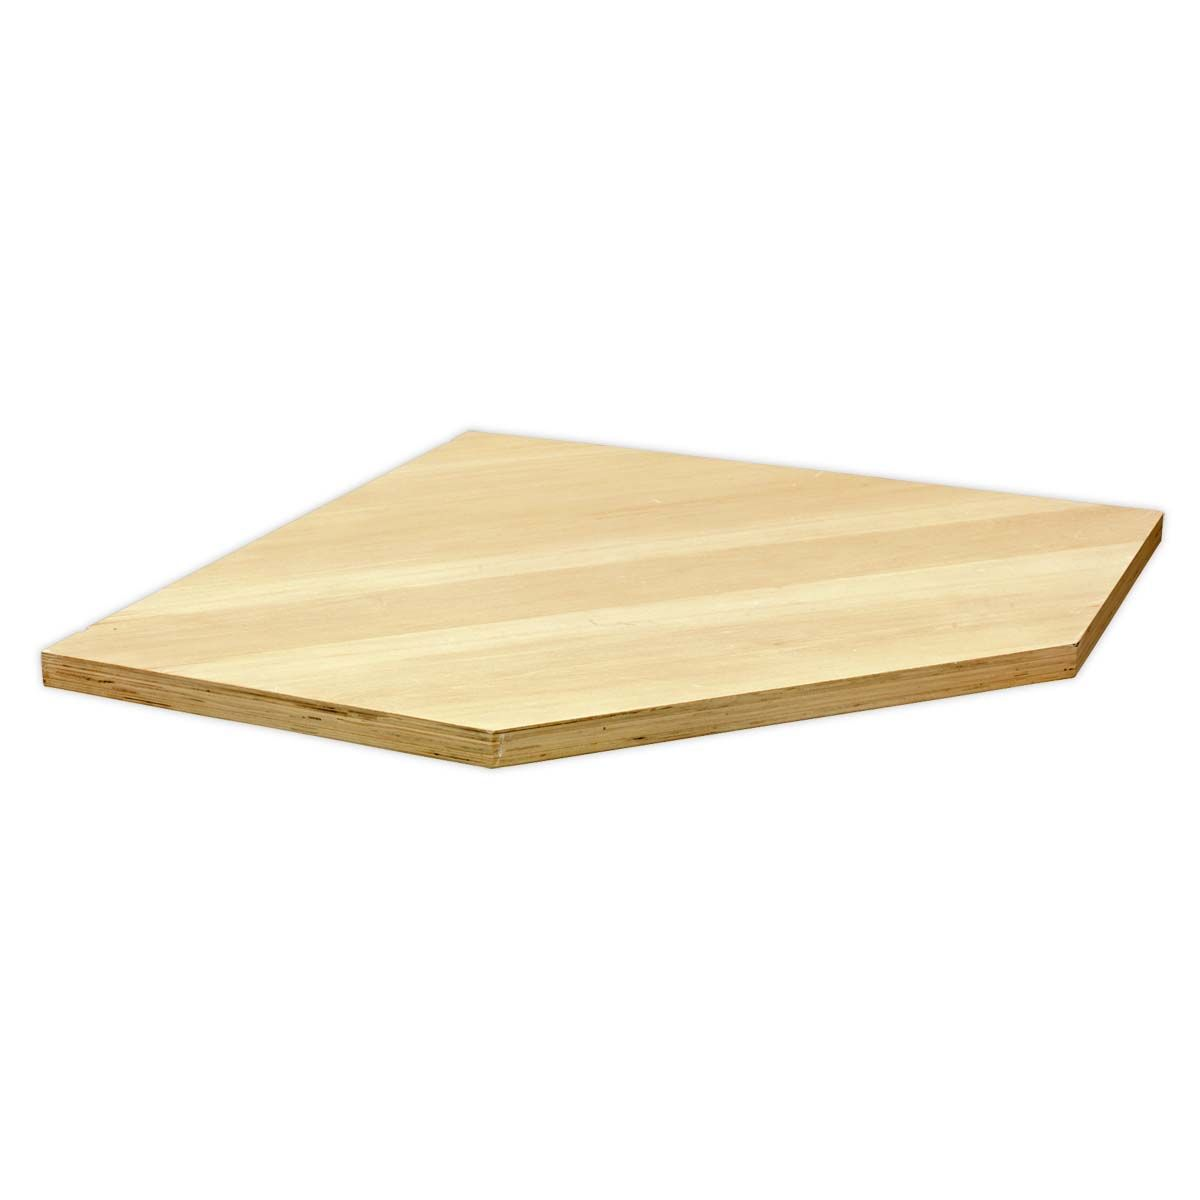 Sealey Superline Pro Pressed Wood Worktop for Modular Corner Cabinet 865mm